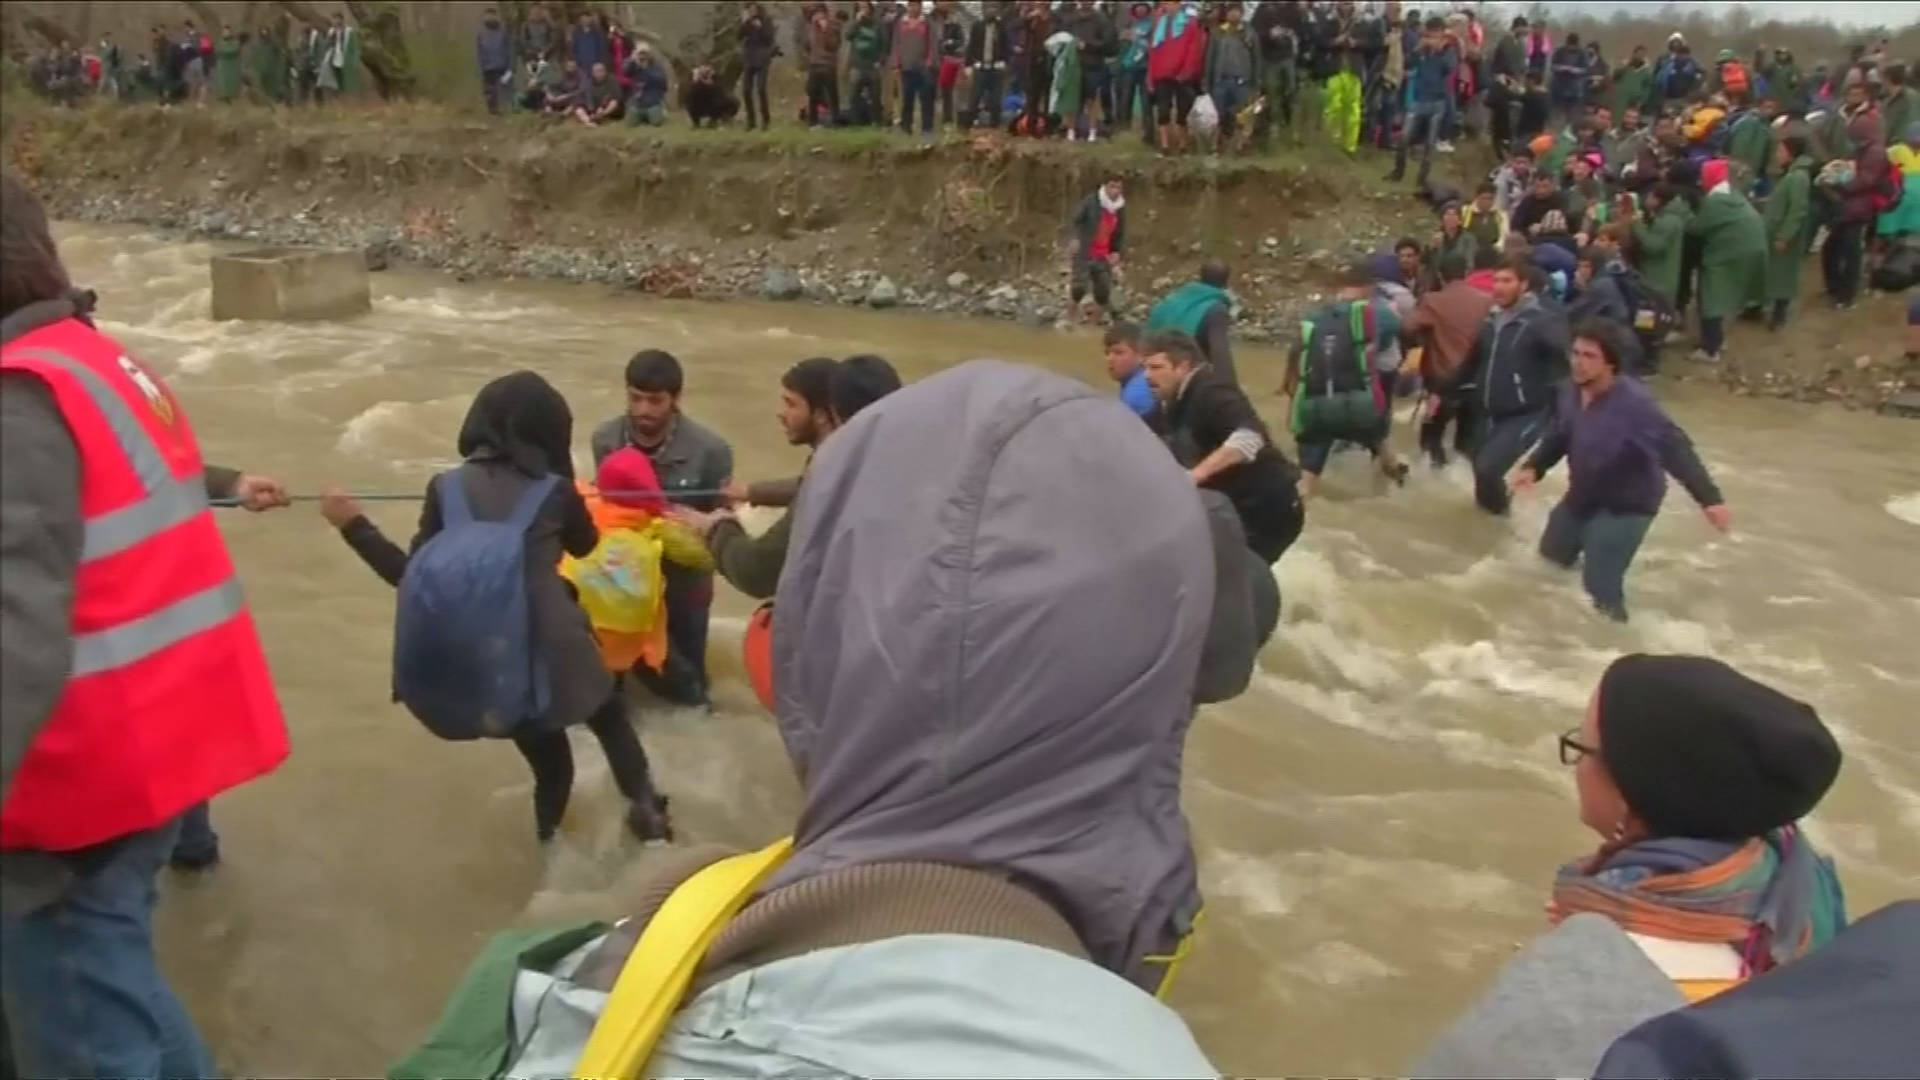 Migrants Form Human Chain Across River to Get to Macedonia